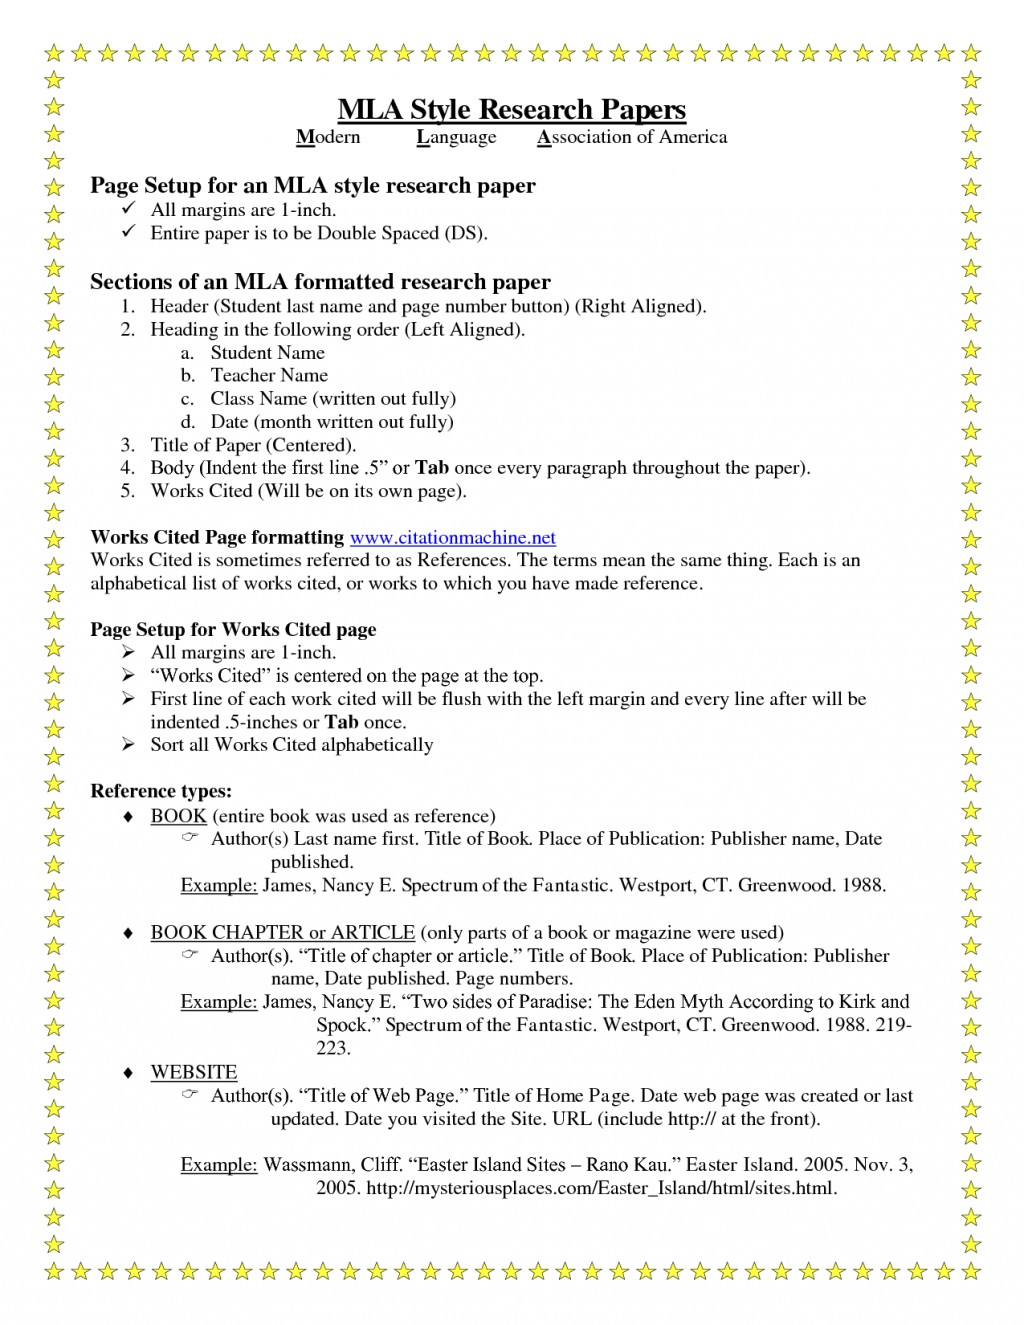 007 Research Paper Order Of Headings In Marvelous On Job Costing Pages Large